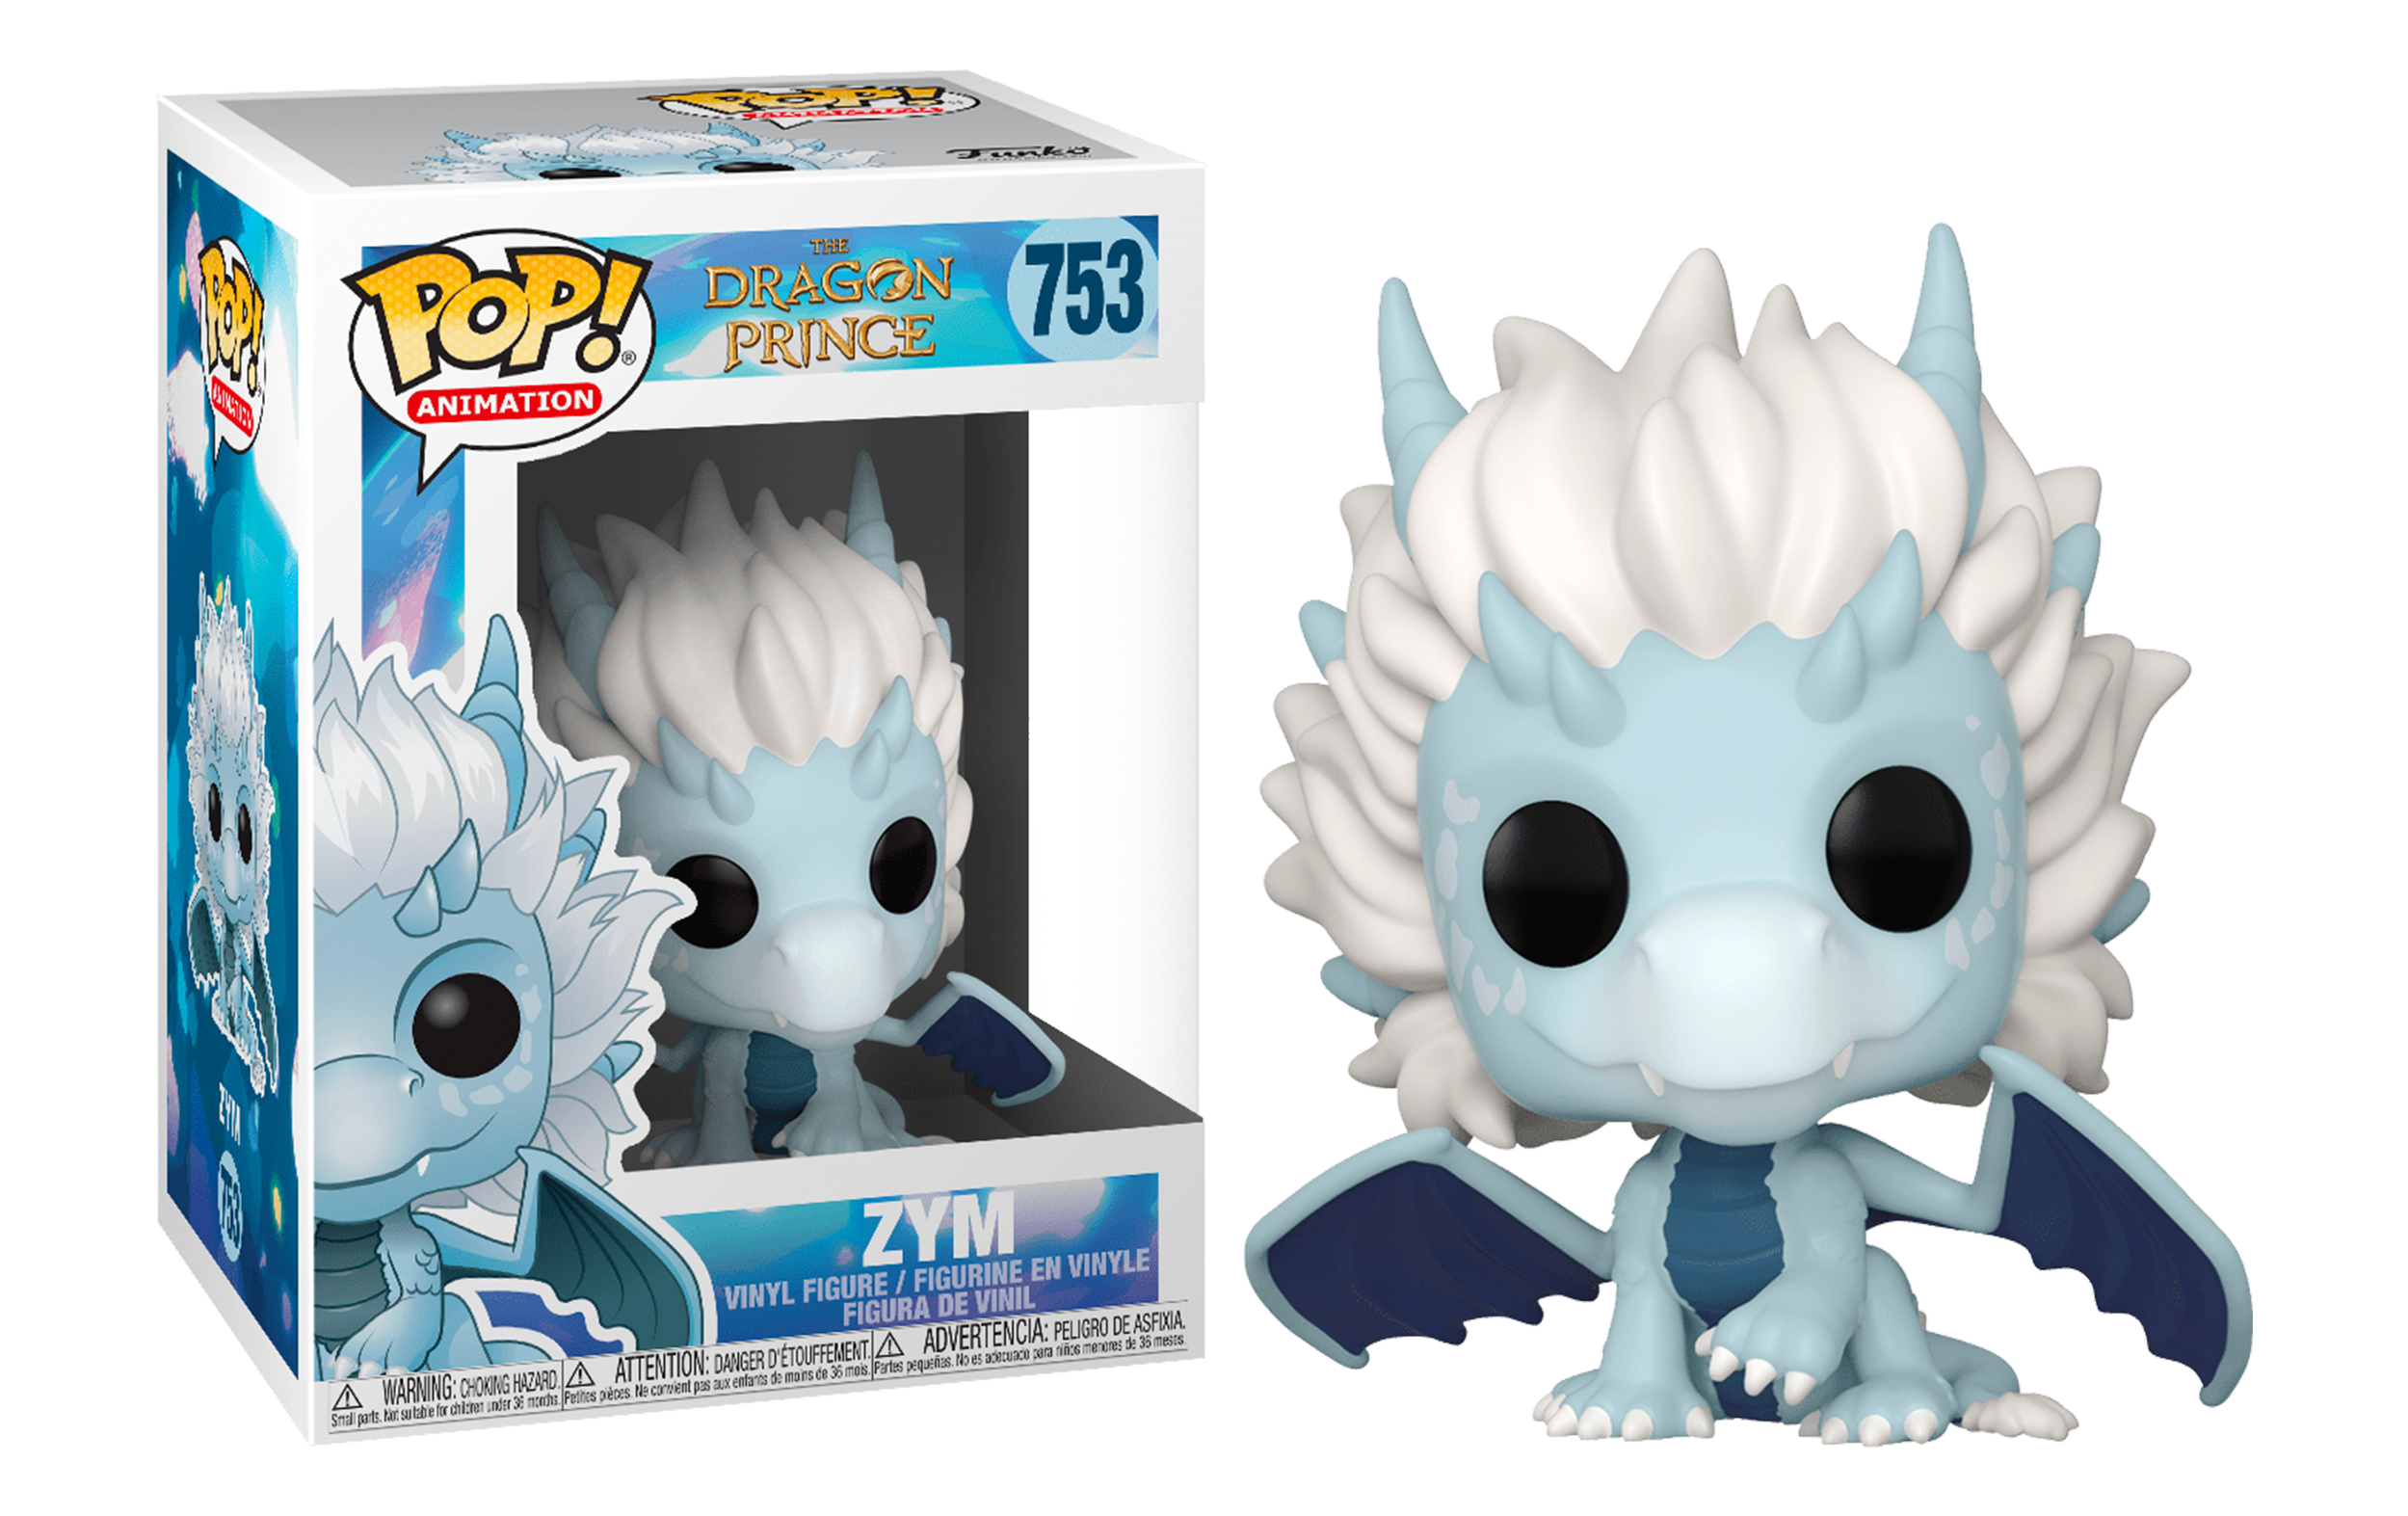 Dragon Prince Zym 753 Funko POP Vinyl Figure